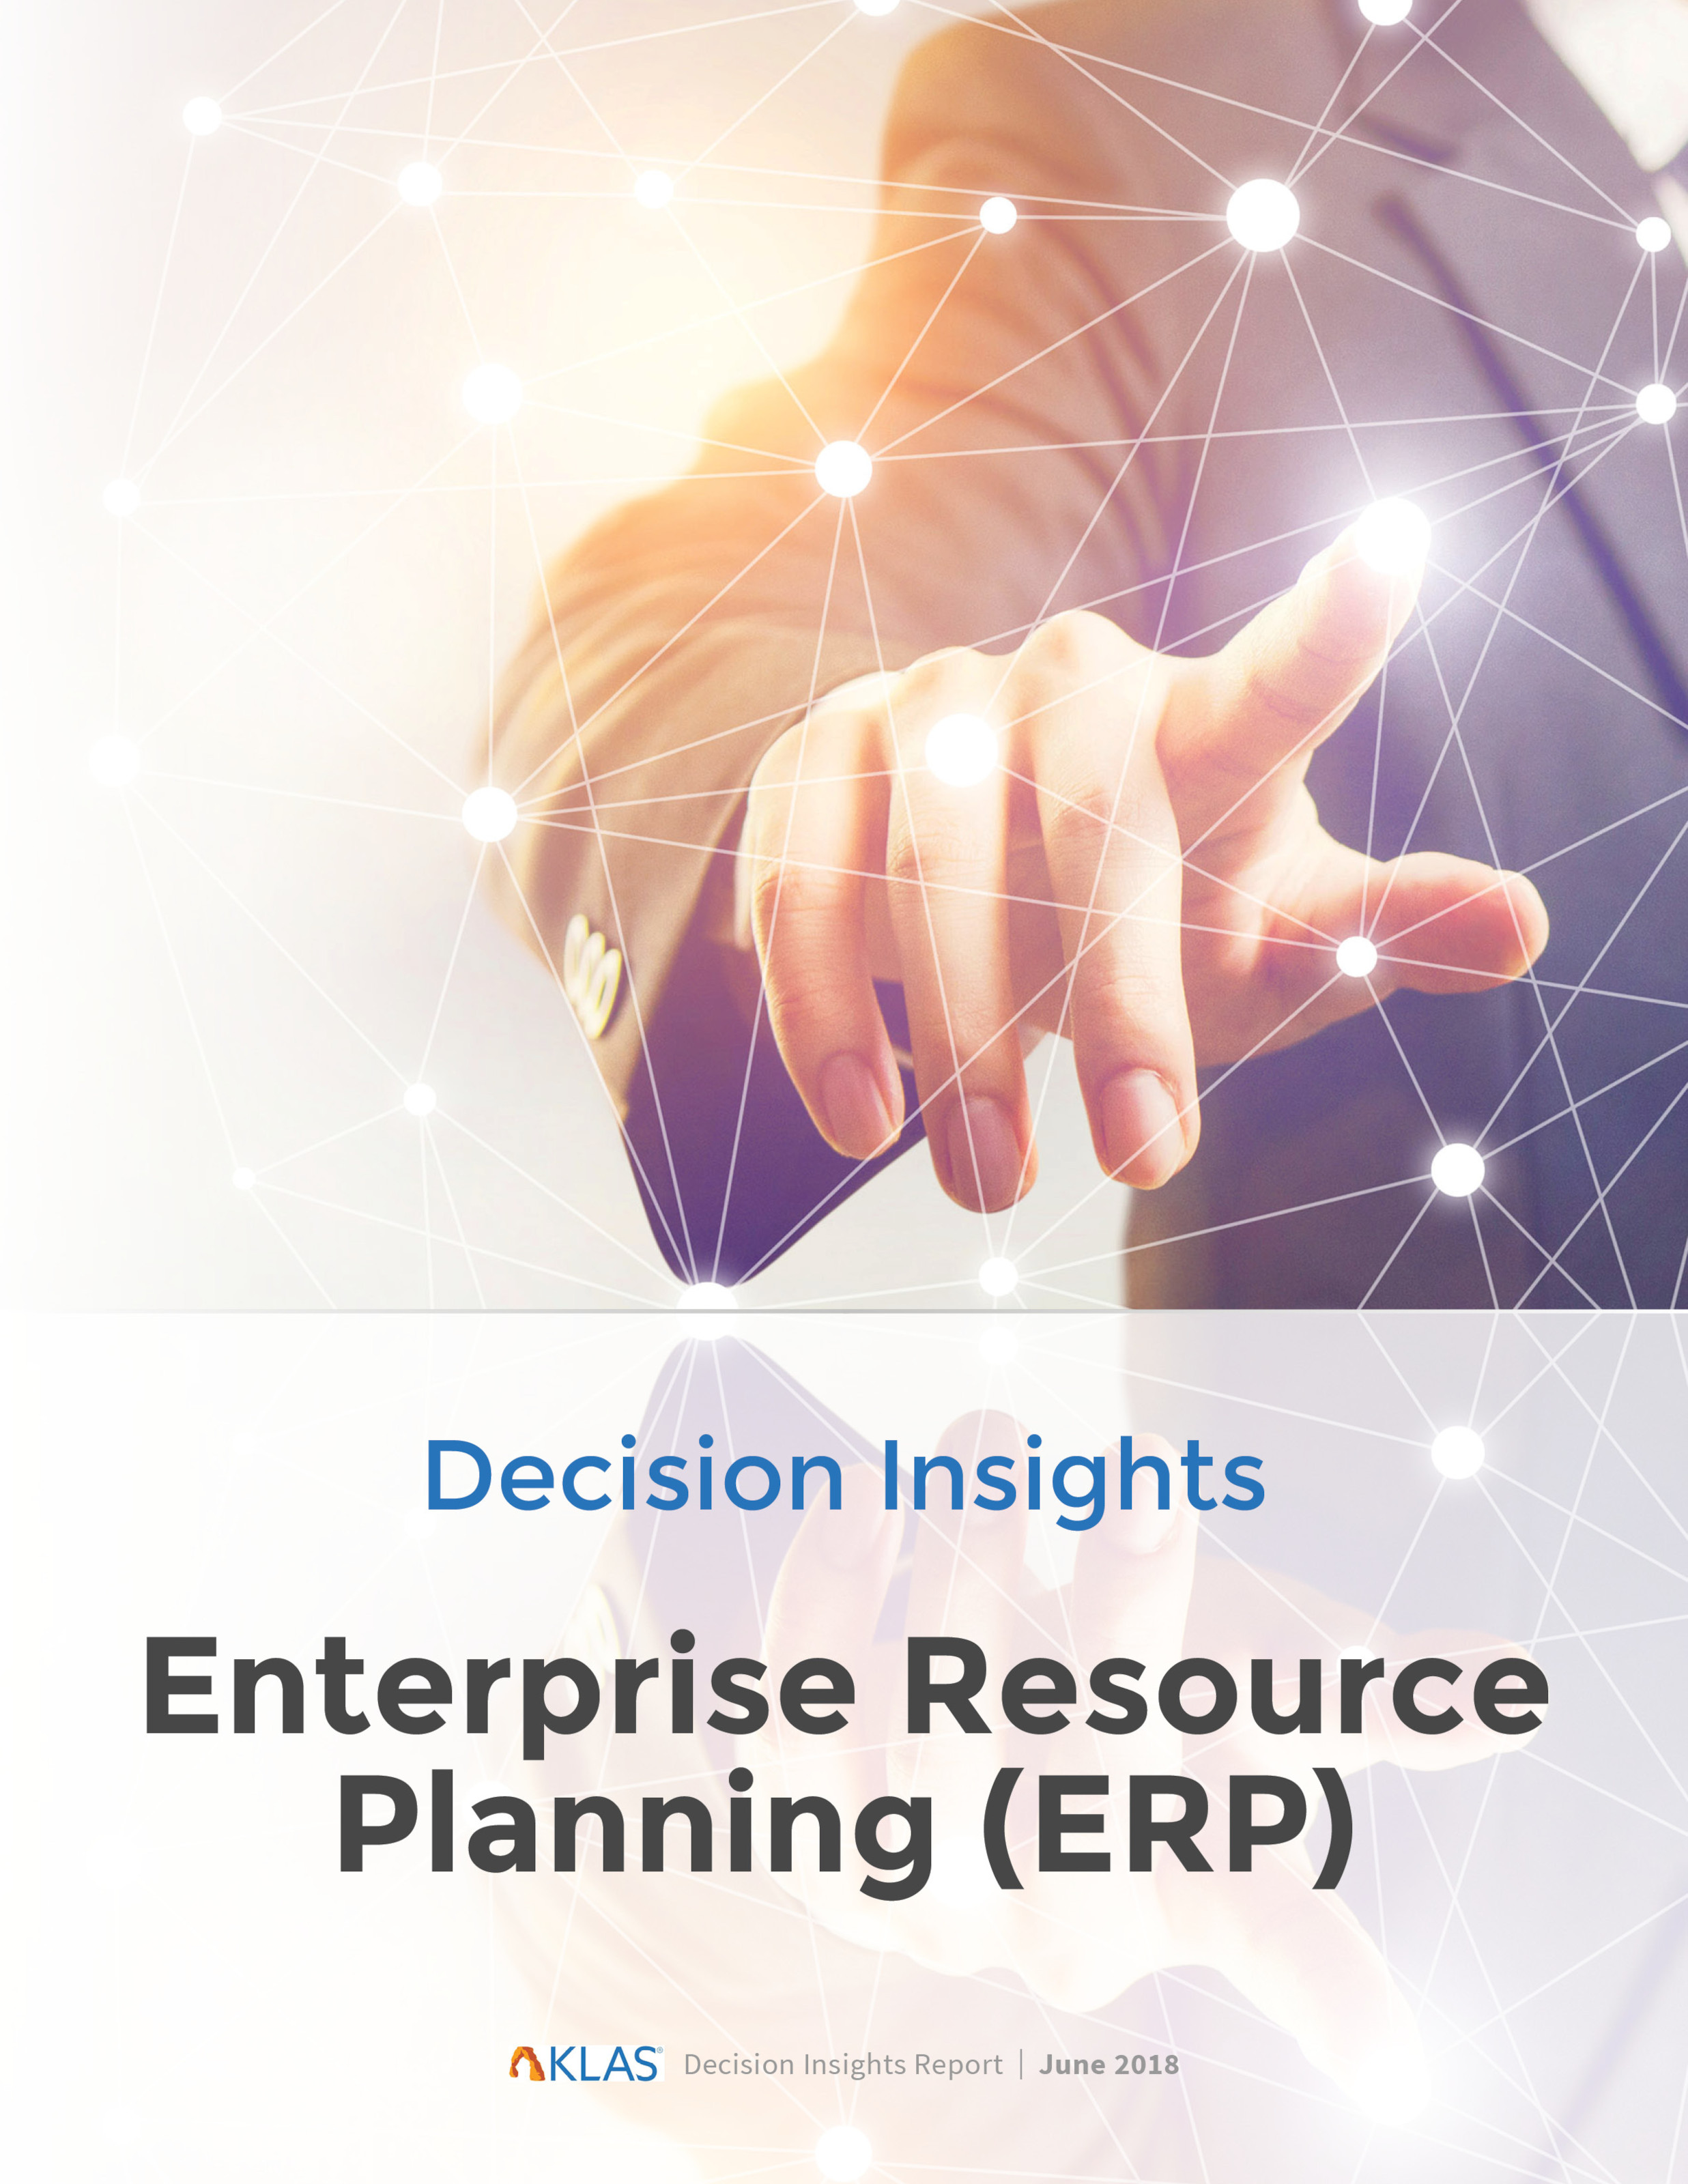 ERP Decision Insights Report 2018 - Enterprise Resource Planning